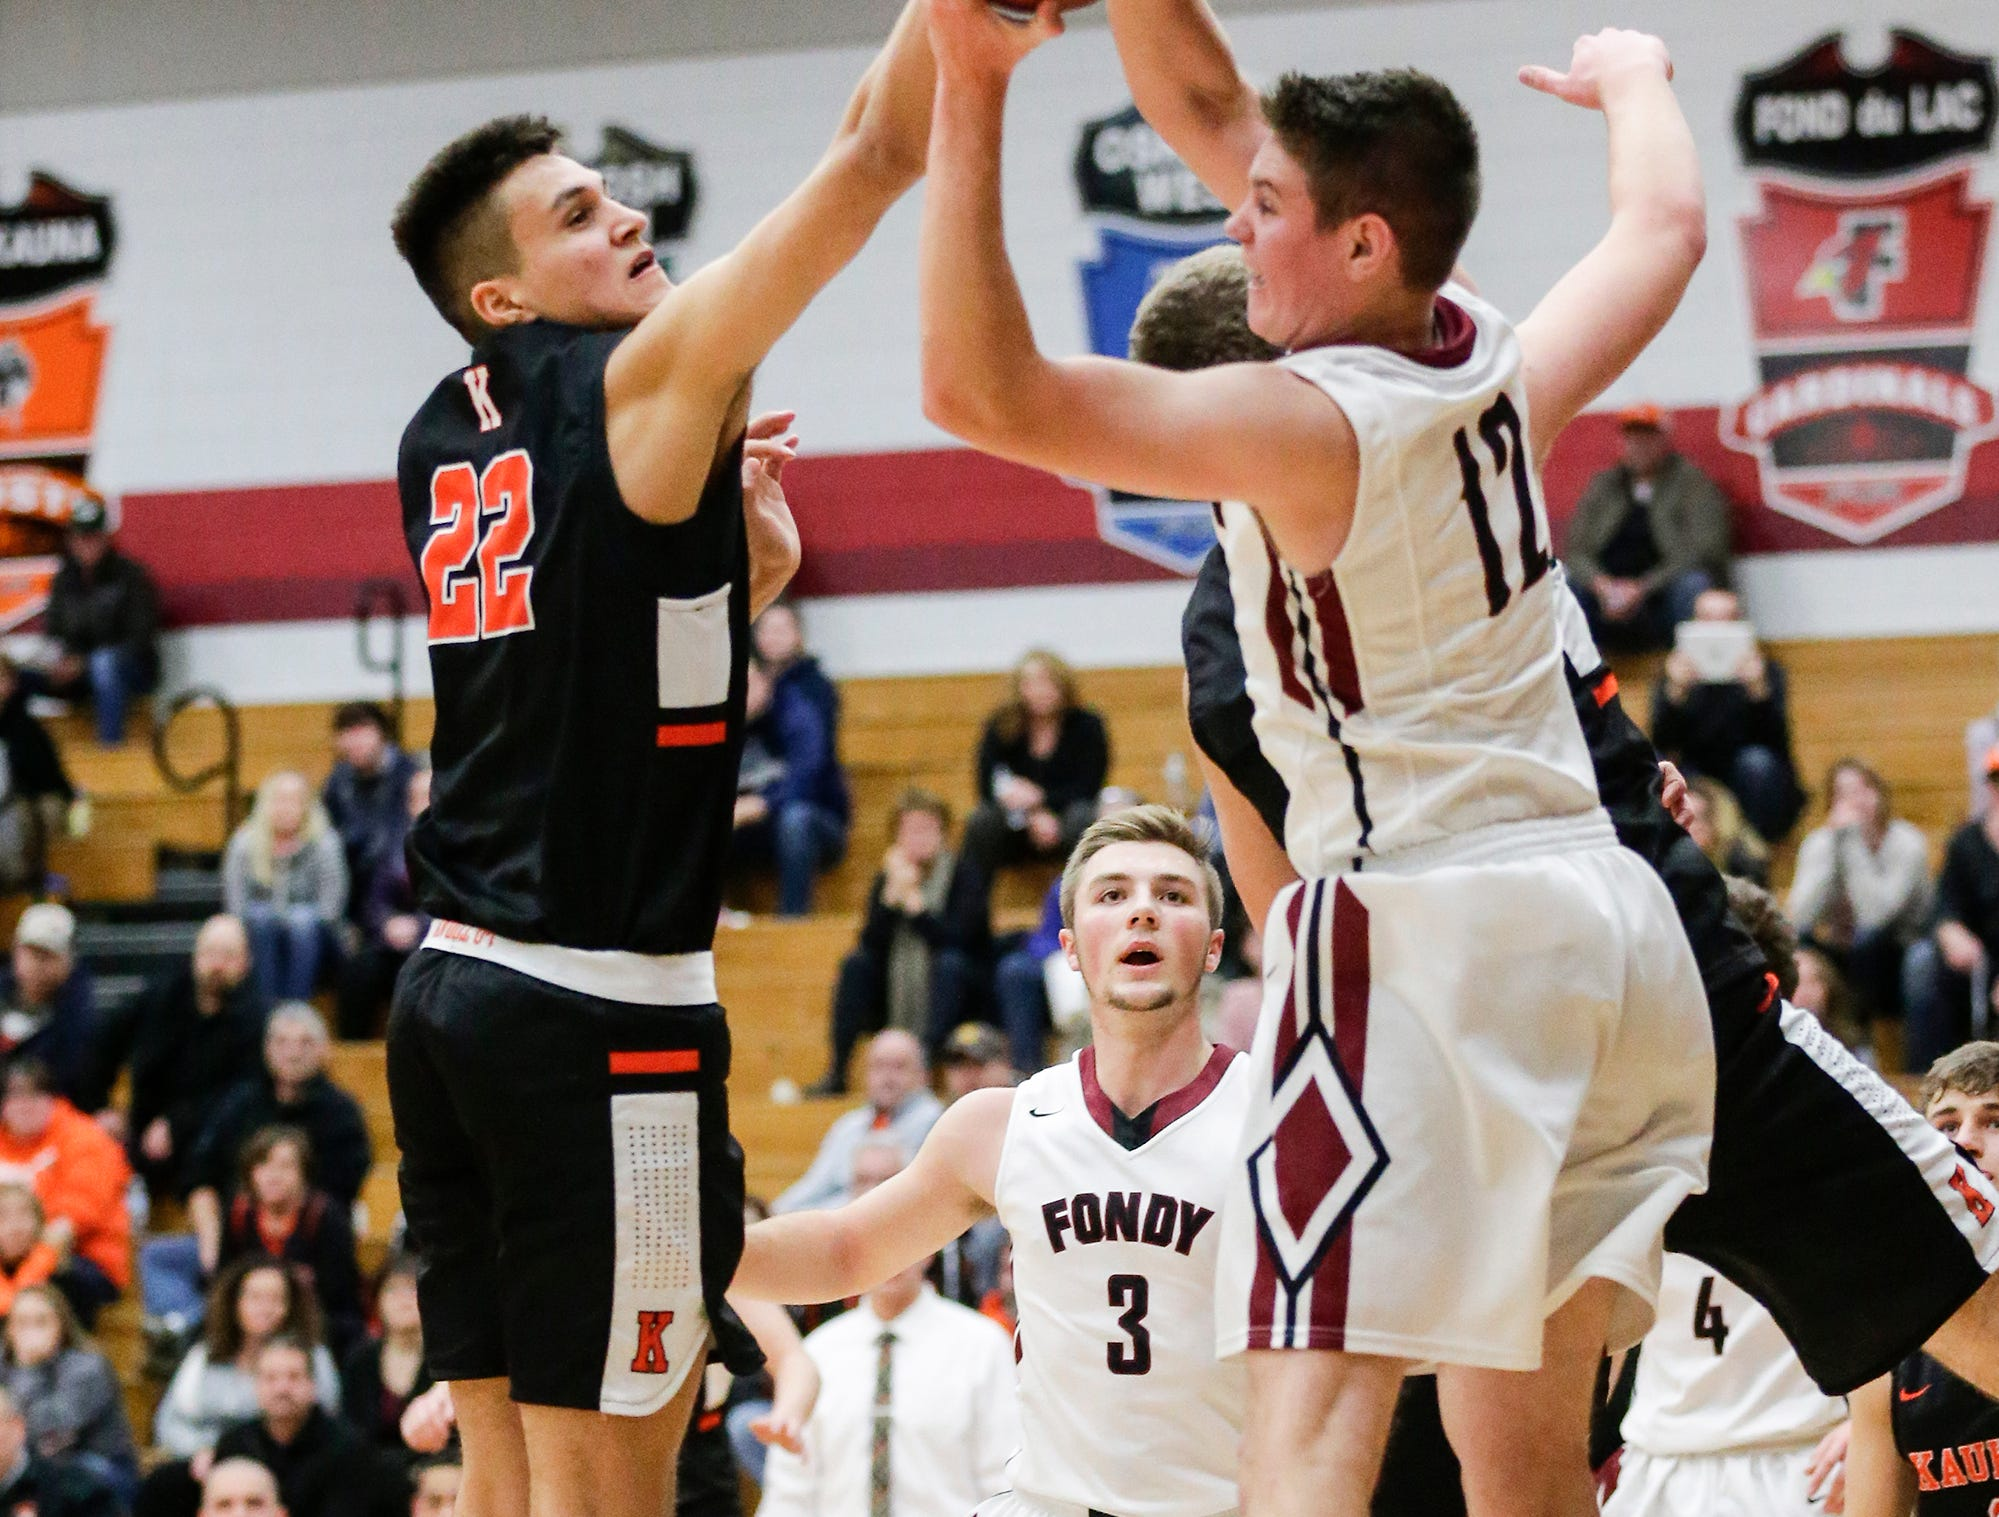 Fond du Lac High School boys basketball's Mack Sebert battles for a rebound with Kaukauna High School's Jacob Newhouse during their game Tuesday, November 27, 2018 in Fond du Lac. Doug Raflik/USA TODAY NETWORK-Wisconsin